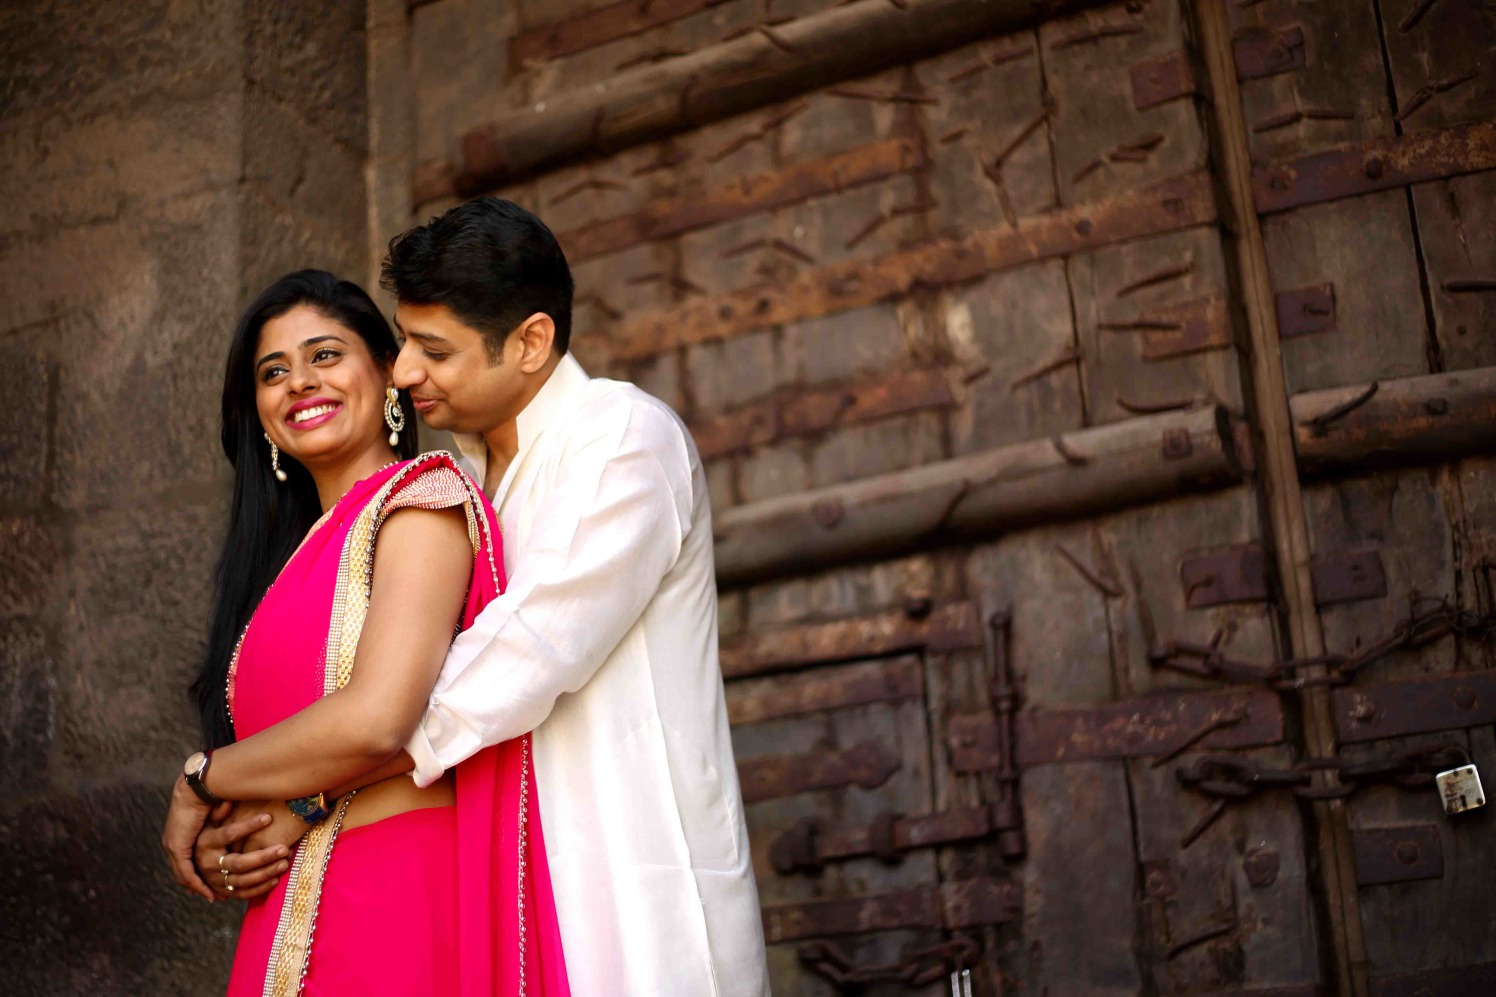 Relishing endearment by Rushil Jadhav Wedding-photography | Weddings Photos & Ideas